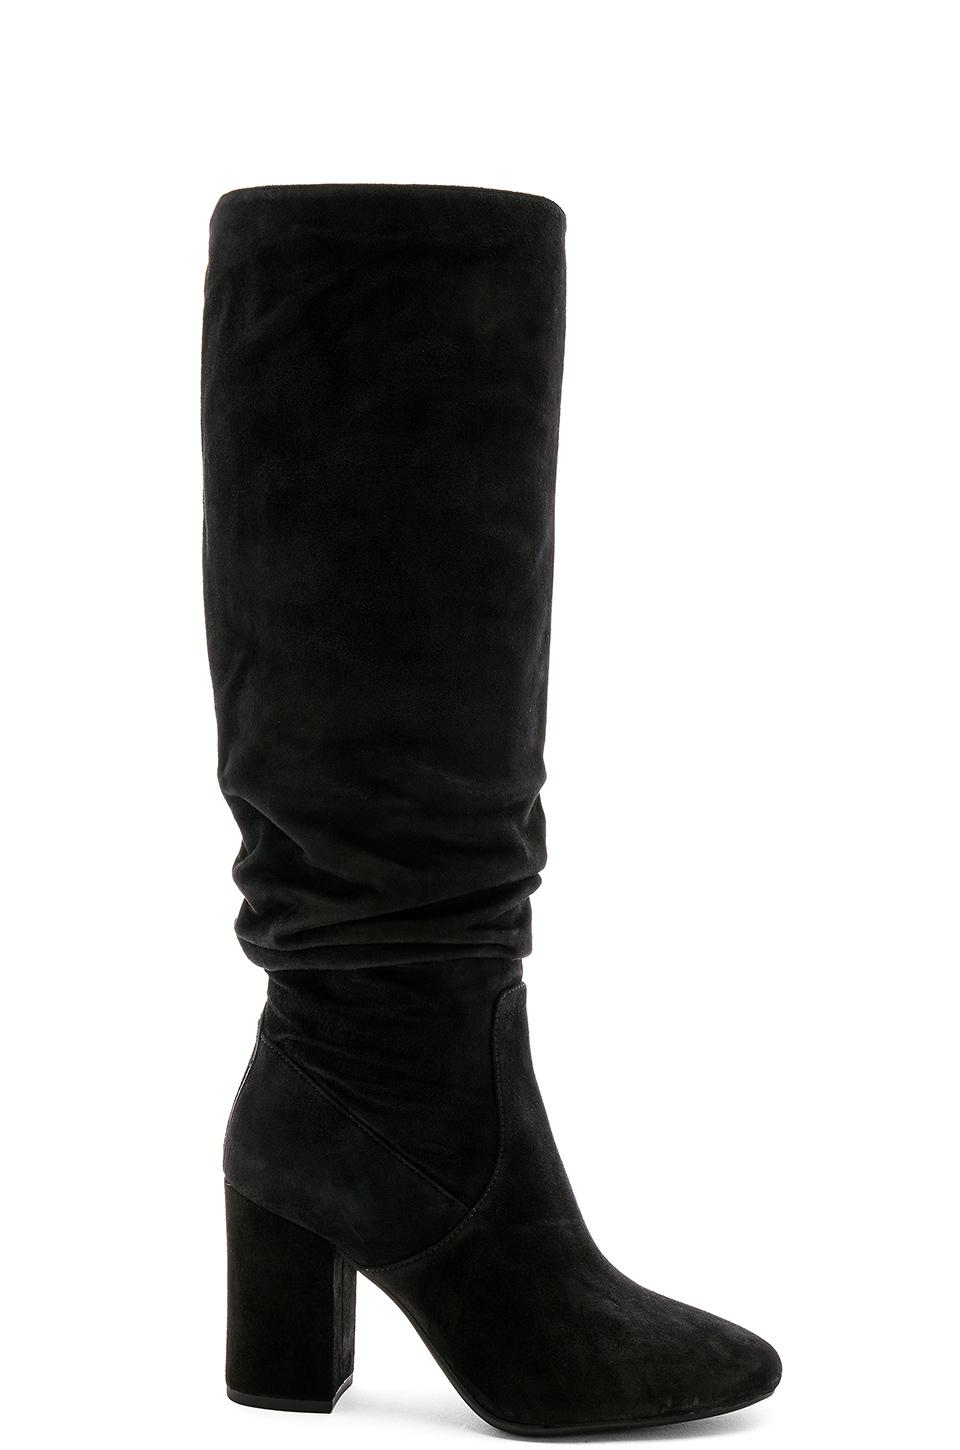 72b88583f63 These black suede Graham knee-high boots from Coach feature a round toe